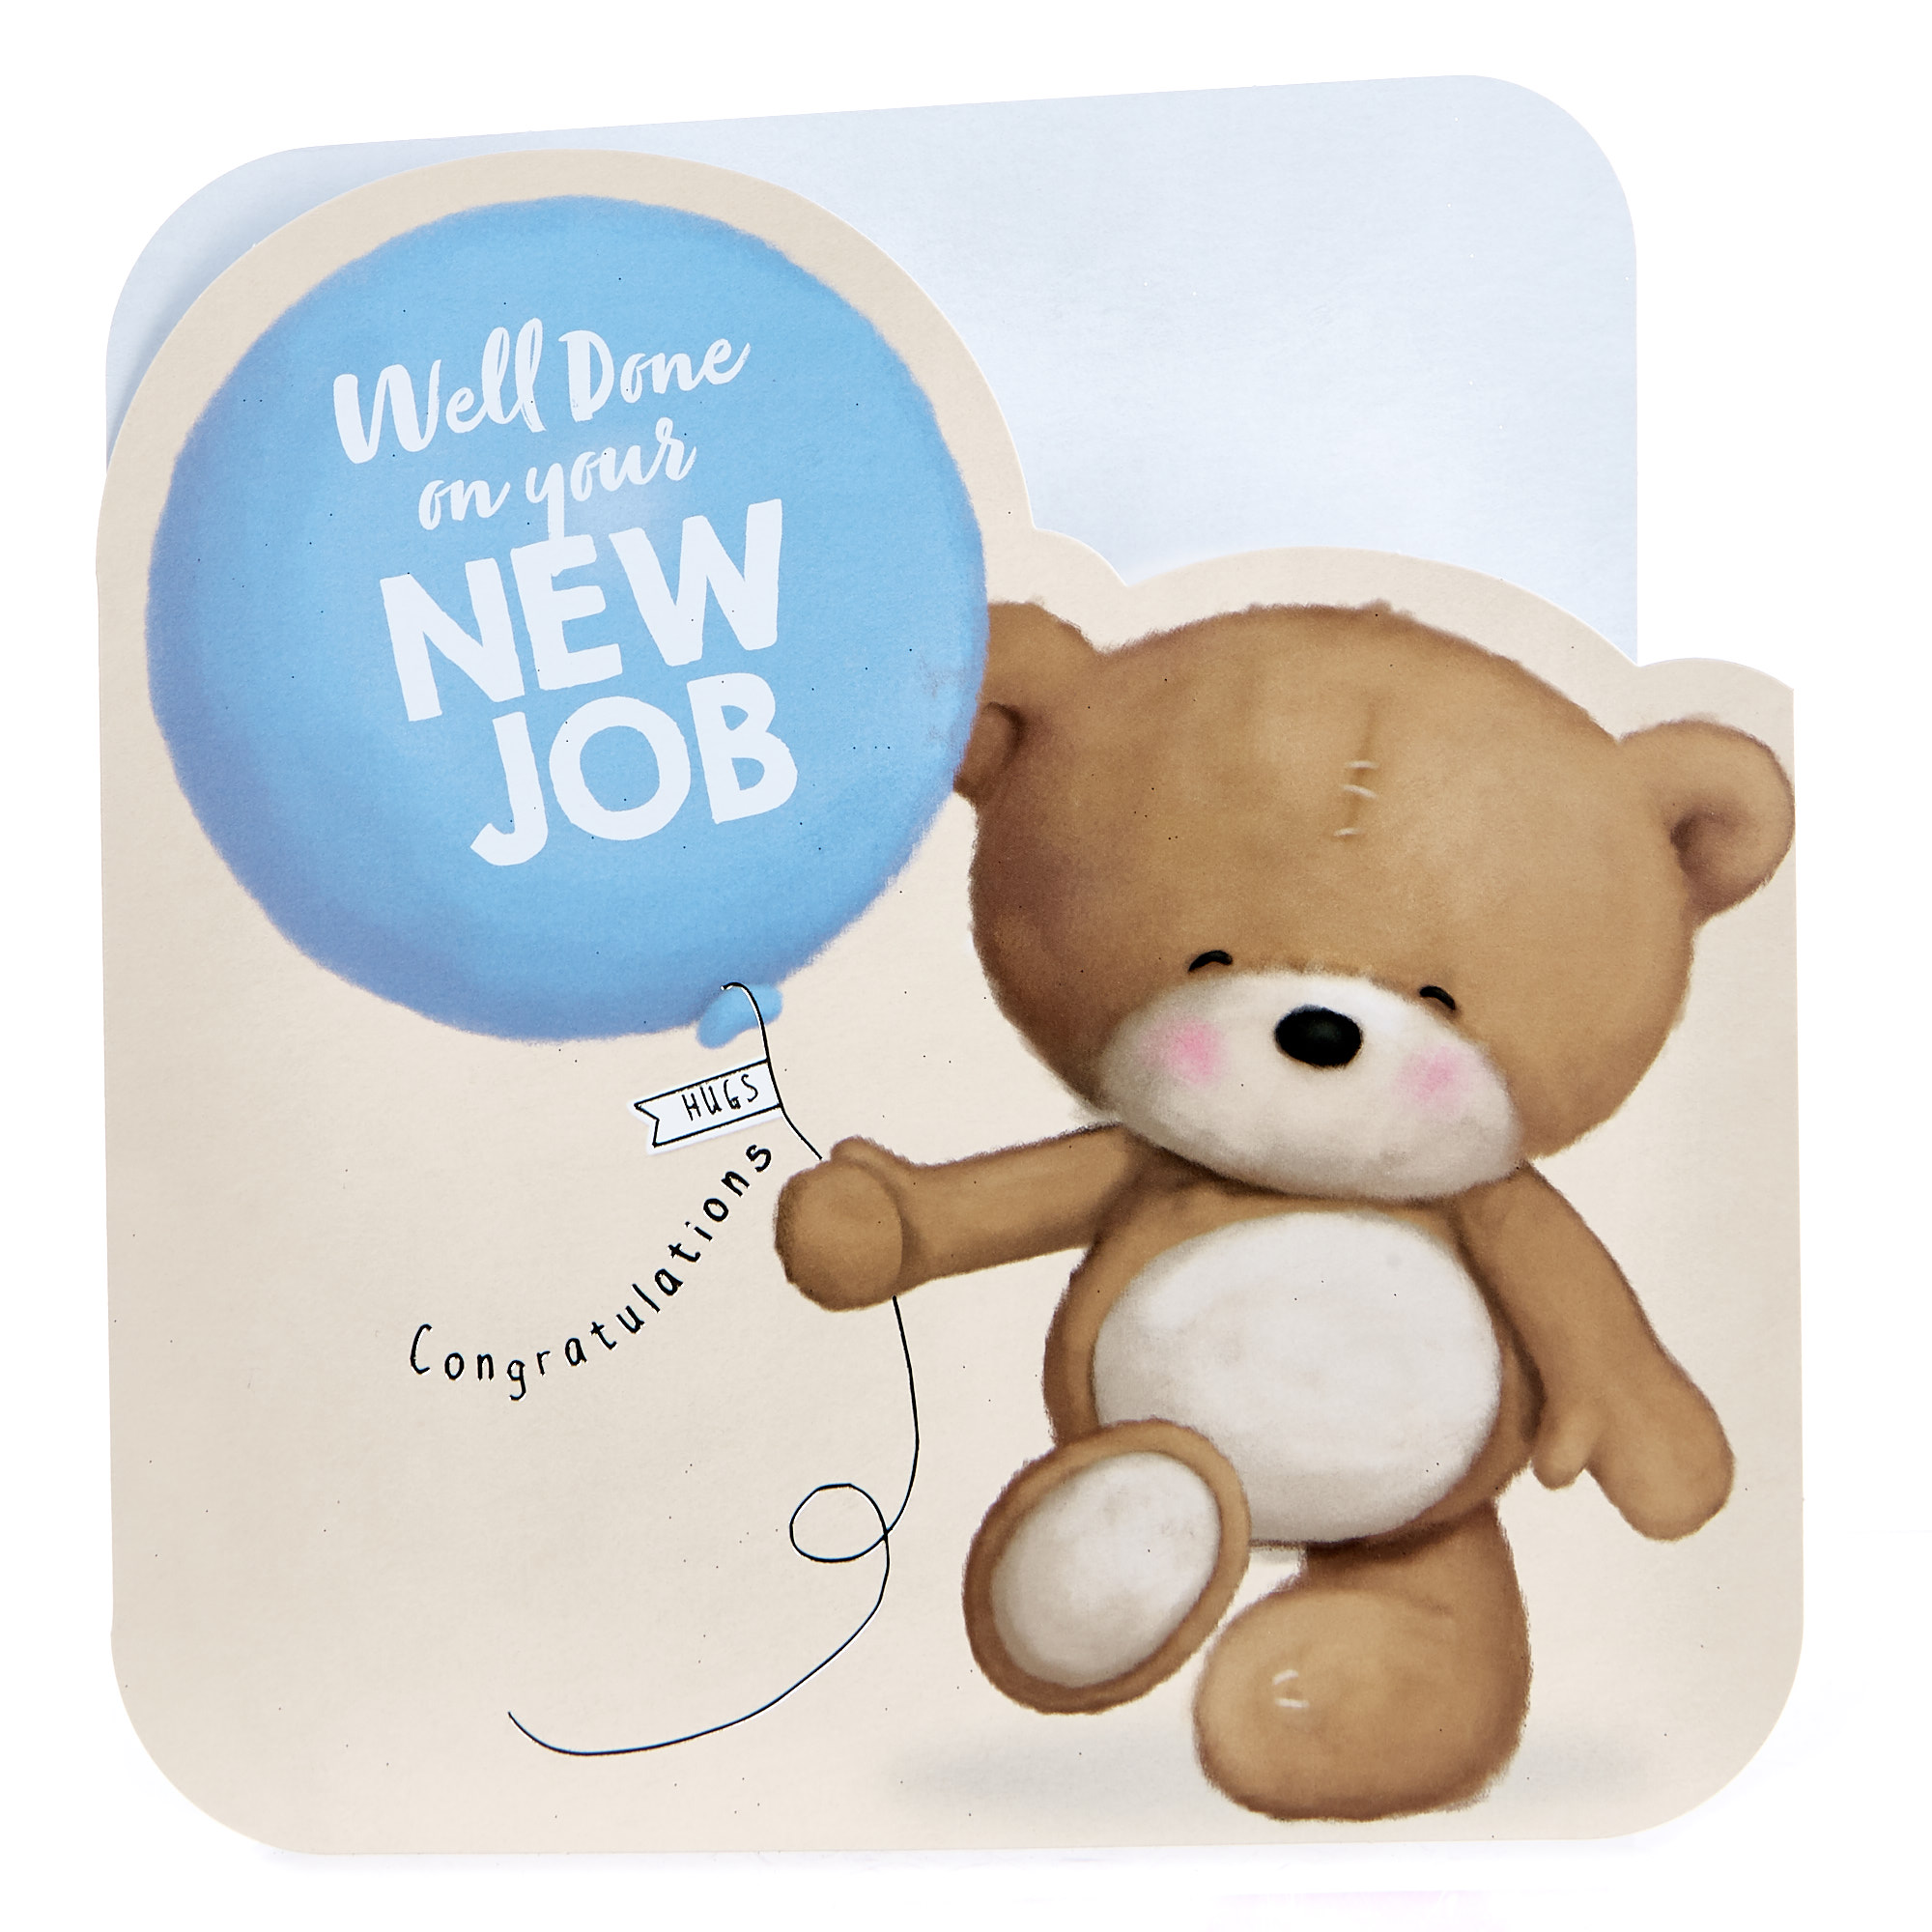 Platinum Collection Hugs Bear New Job Card - Well Done